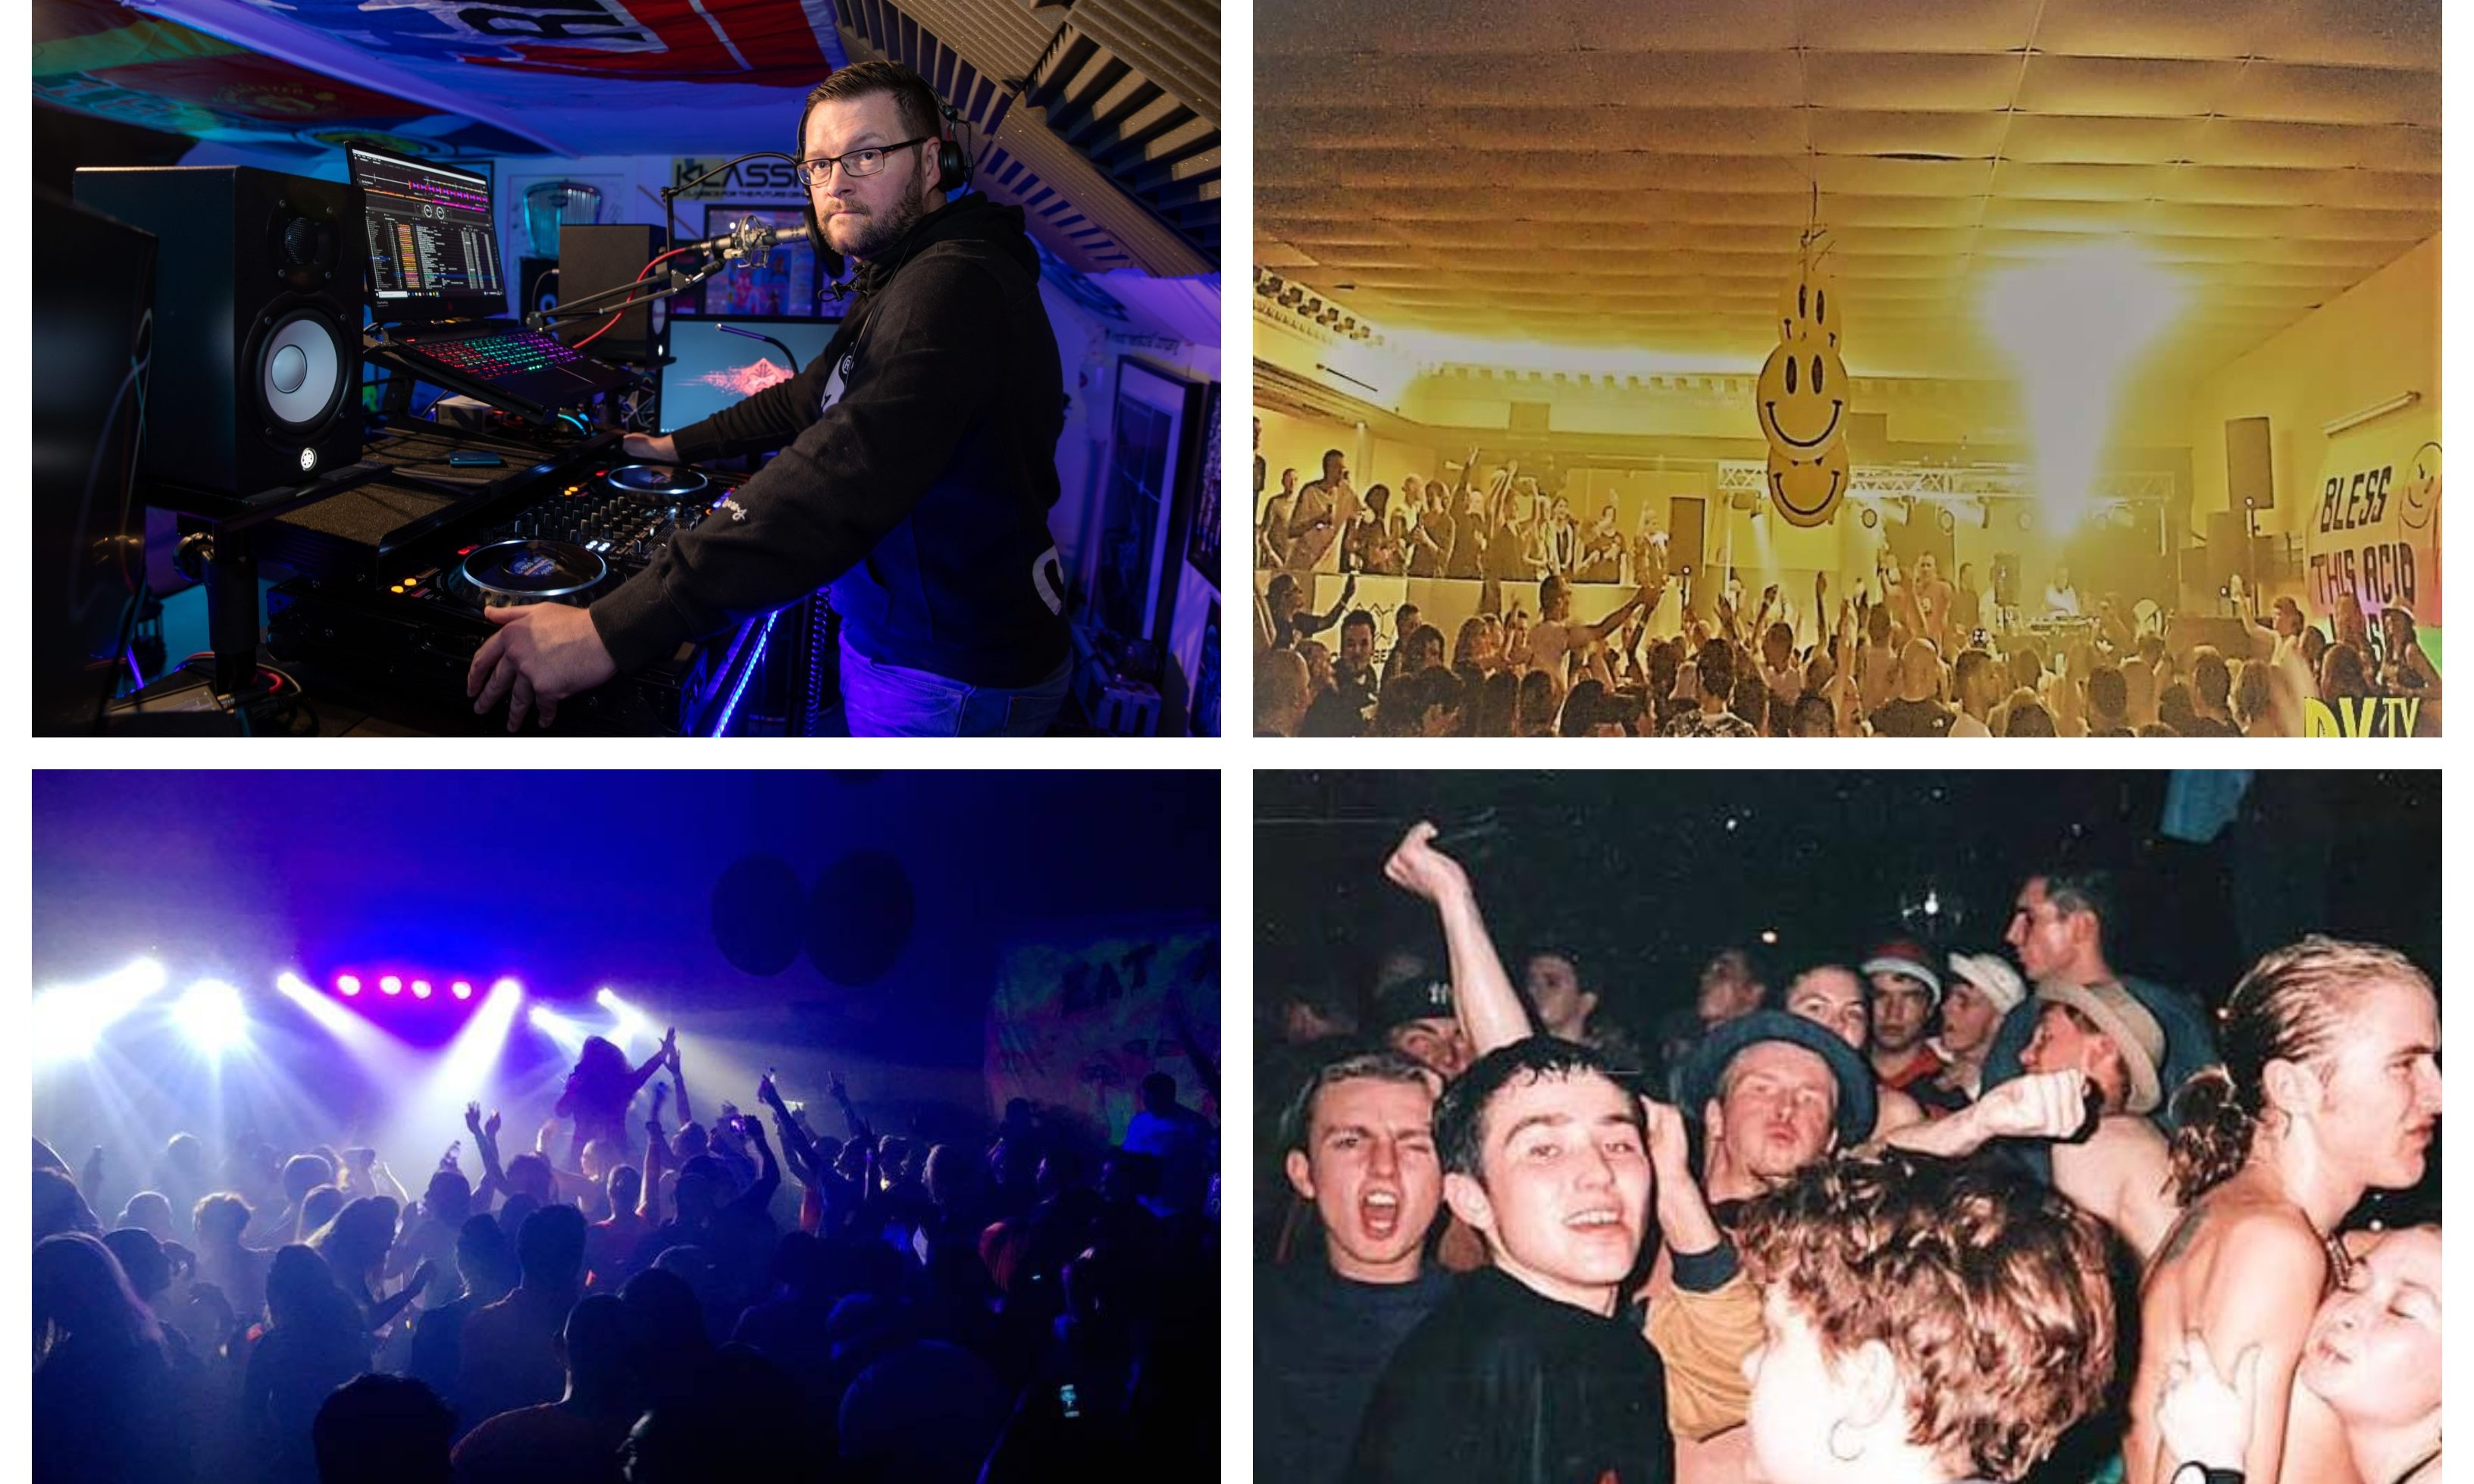 Reunion has brought the legendary heyday of Fife's rave scene back to Rosyth.